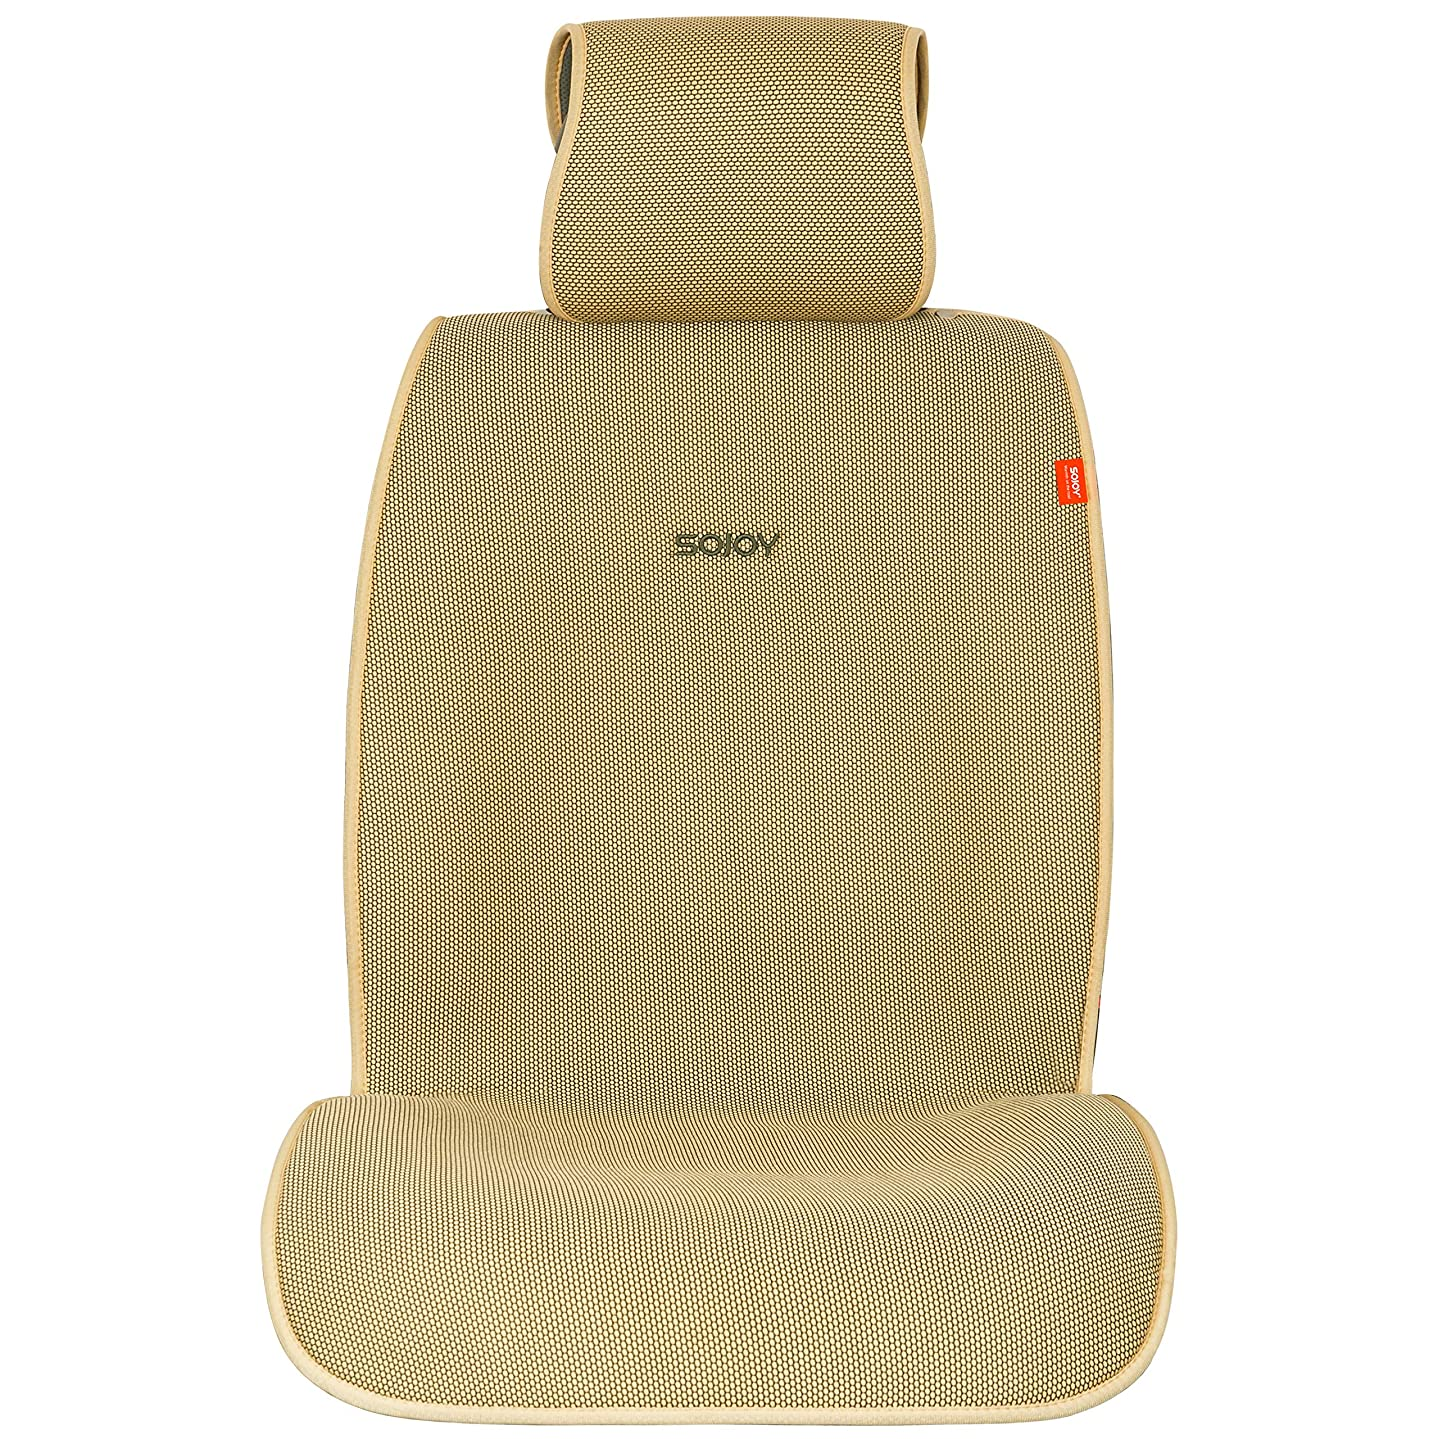 Sojoy IsoTowel Car Seat Cover. Microfiber Seat Protector, with Quick-Dry, No-Slip Technology. Car seat Protection for All Workouts, All-Weather Honeycomb Cloth (Tan and Cream)